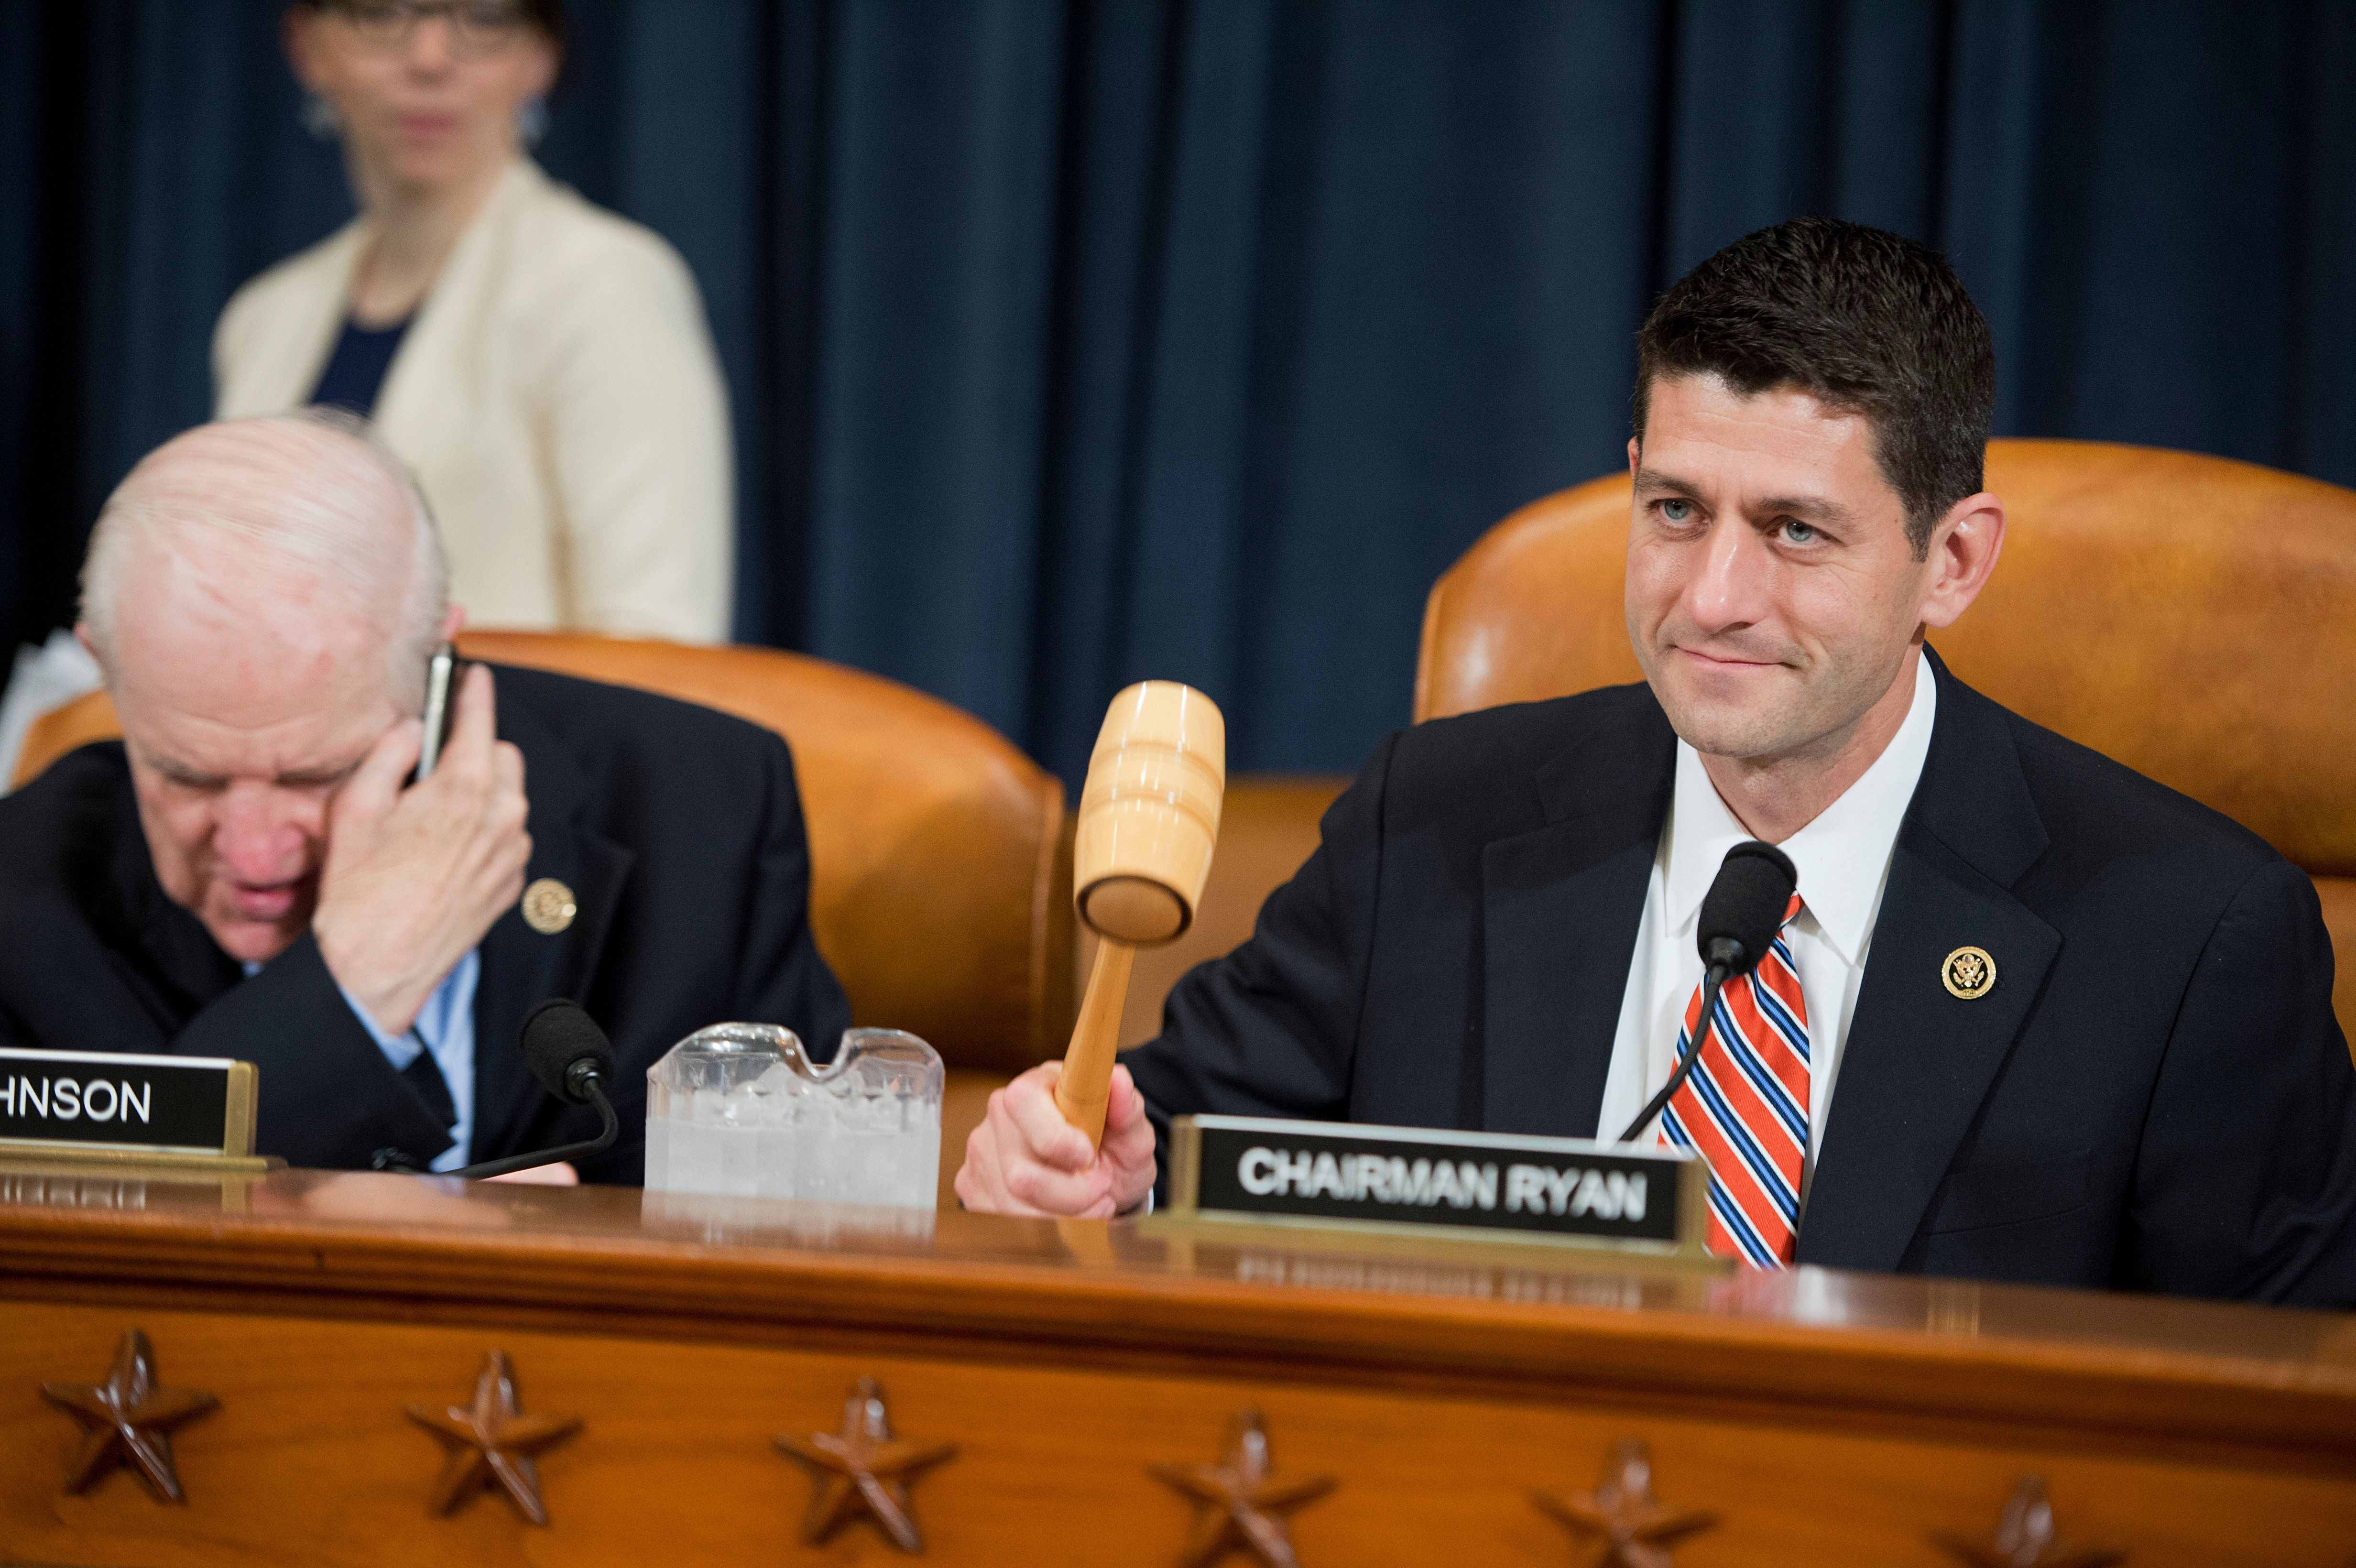 UNITED STATES - JUNE 10: Chairman Paul Ryan, R-Wisc., gavels in a House Ways and Means Committee hearing in Longworth Building titled 'Obamacare Implementation and the Department of Health and Human Services FY2016 Budget Request,' June 10, 2015. Rep. Sam Johnson, R-Texas, appears at left. HHS Secretary Sylvia Mathews Burwell, testified. (Photo By Tom Williams/CQ Roll Call)